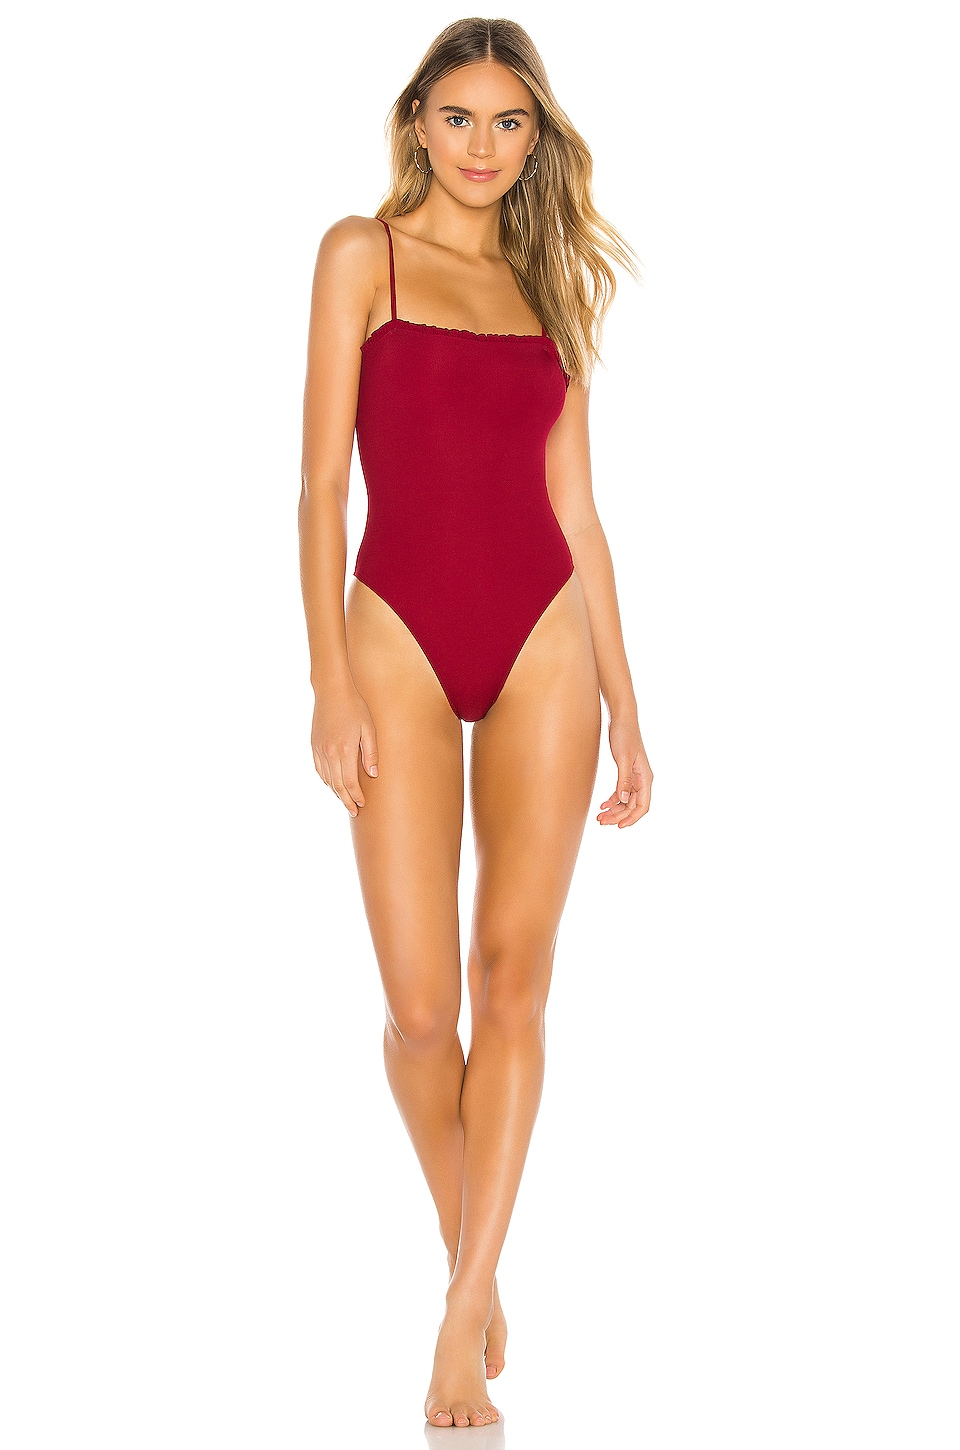 House of Harlow 1960 X REVOLVE Sommers One Piece in Ruby